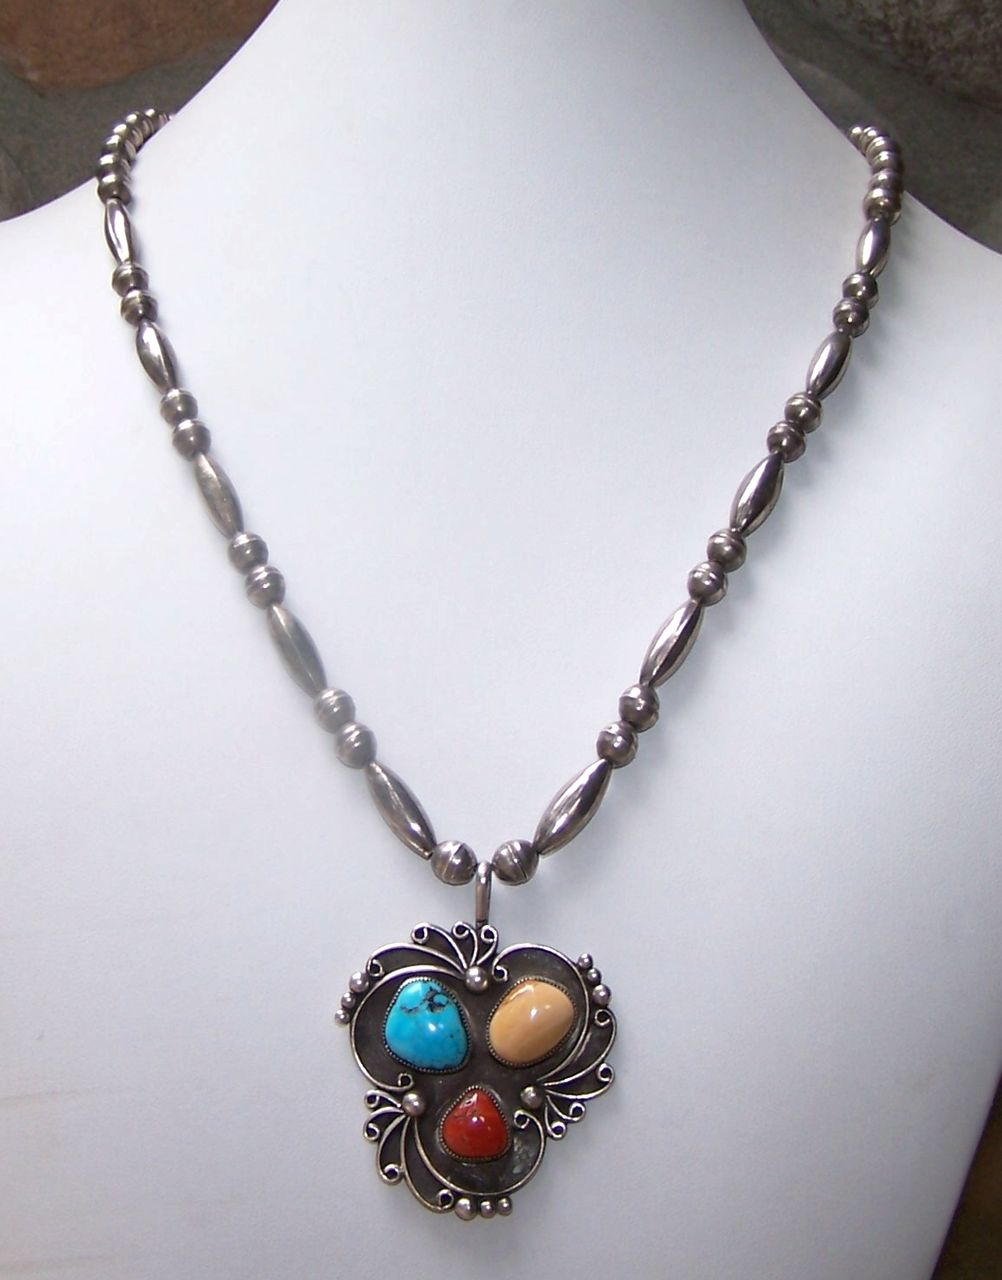 Signed Navajo Sterling Silver, Turquoise, Coral And Fossil Pendant Necklace